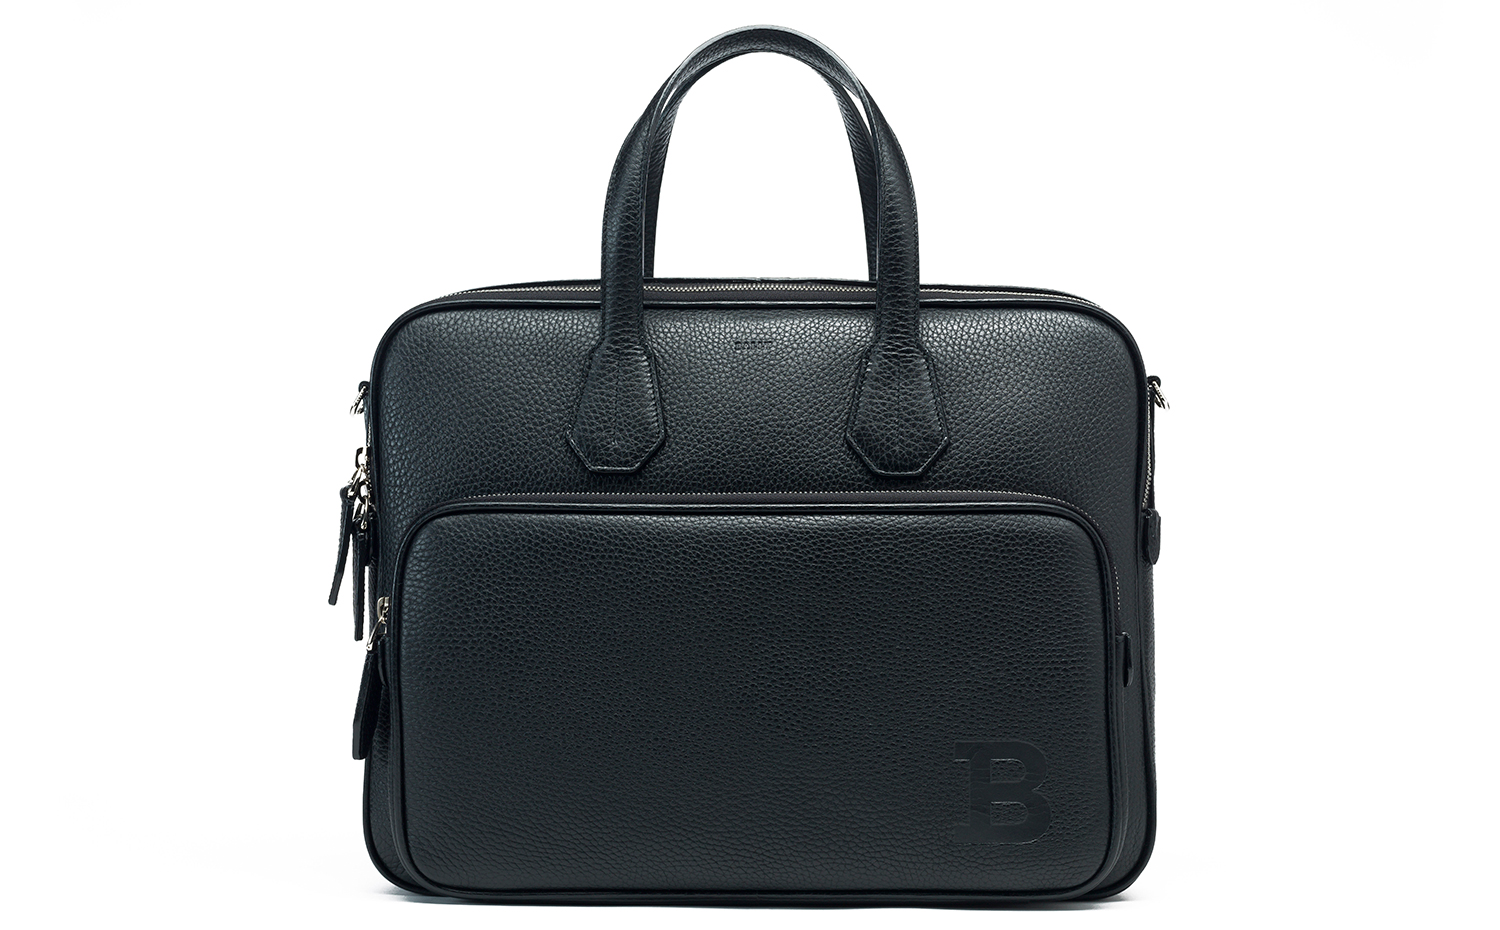 BALLY LEIBOVITZ black